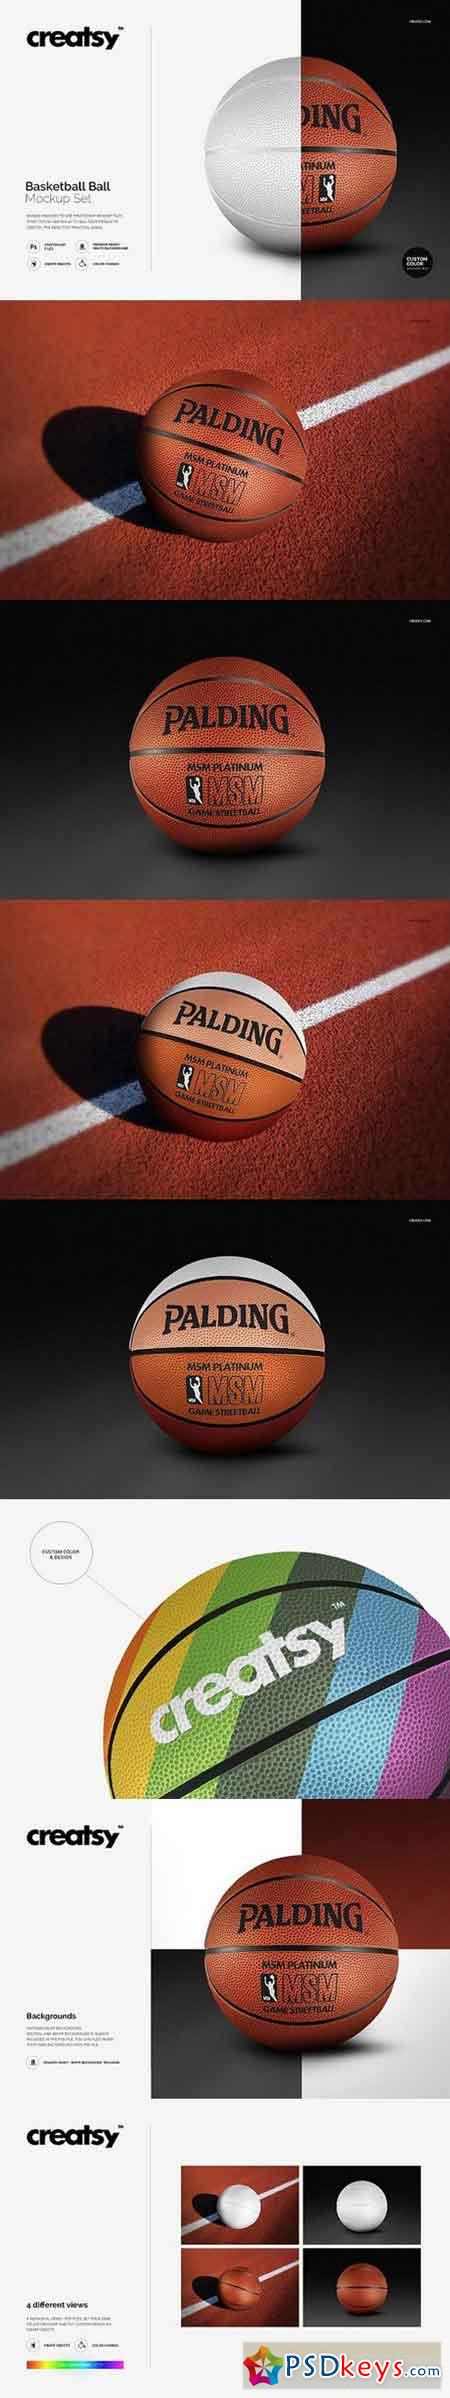 Basketball Ball Mockup Set 1270753